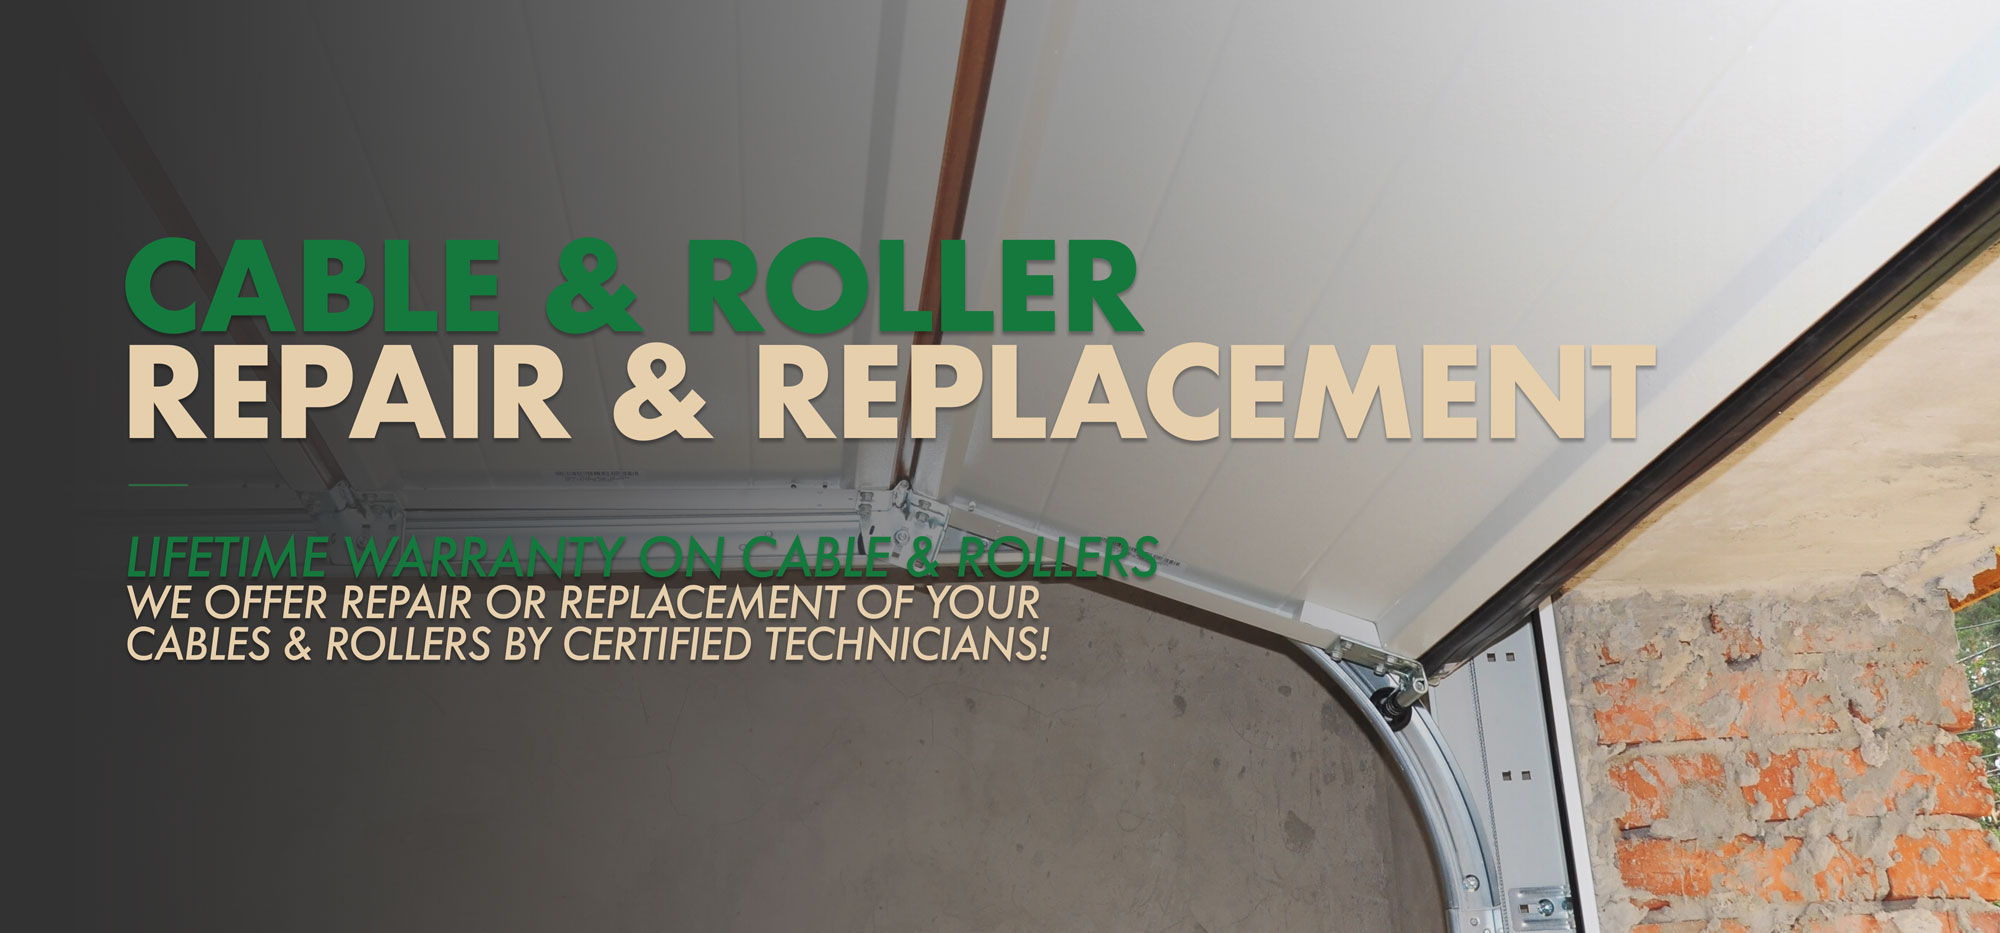 Cable & Roller Repair & Replacement